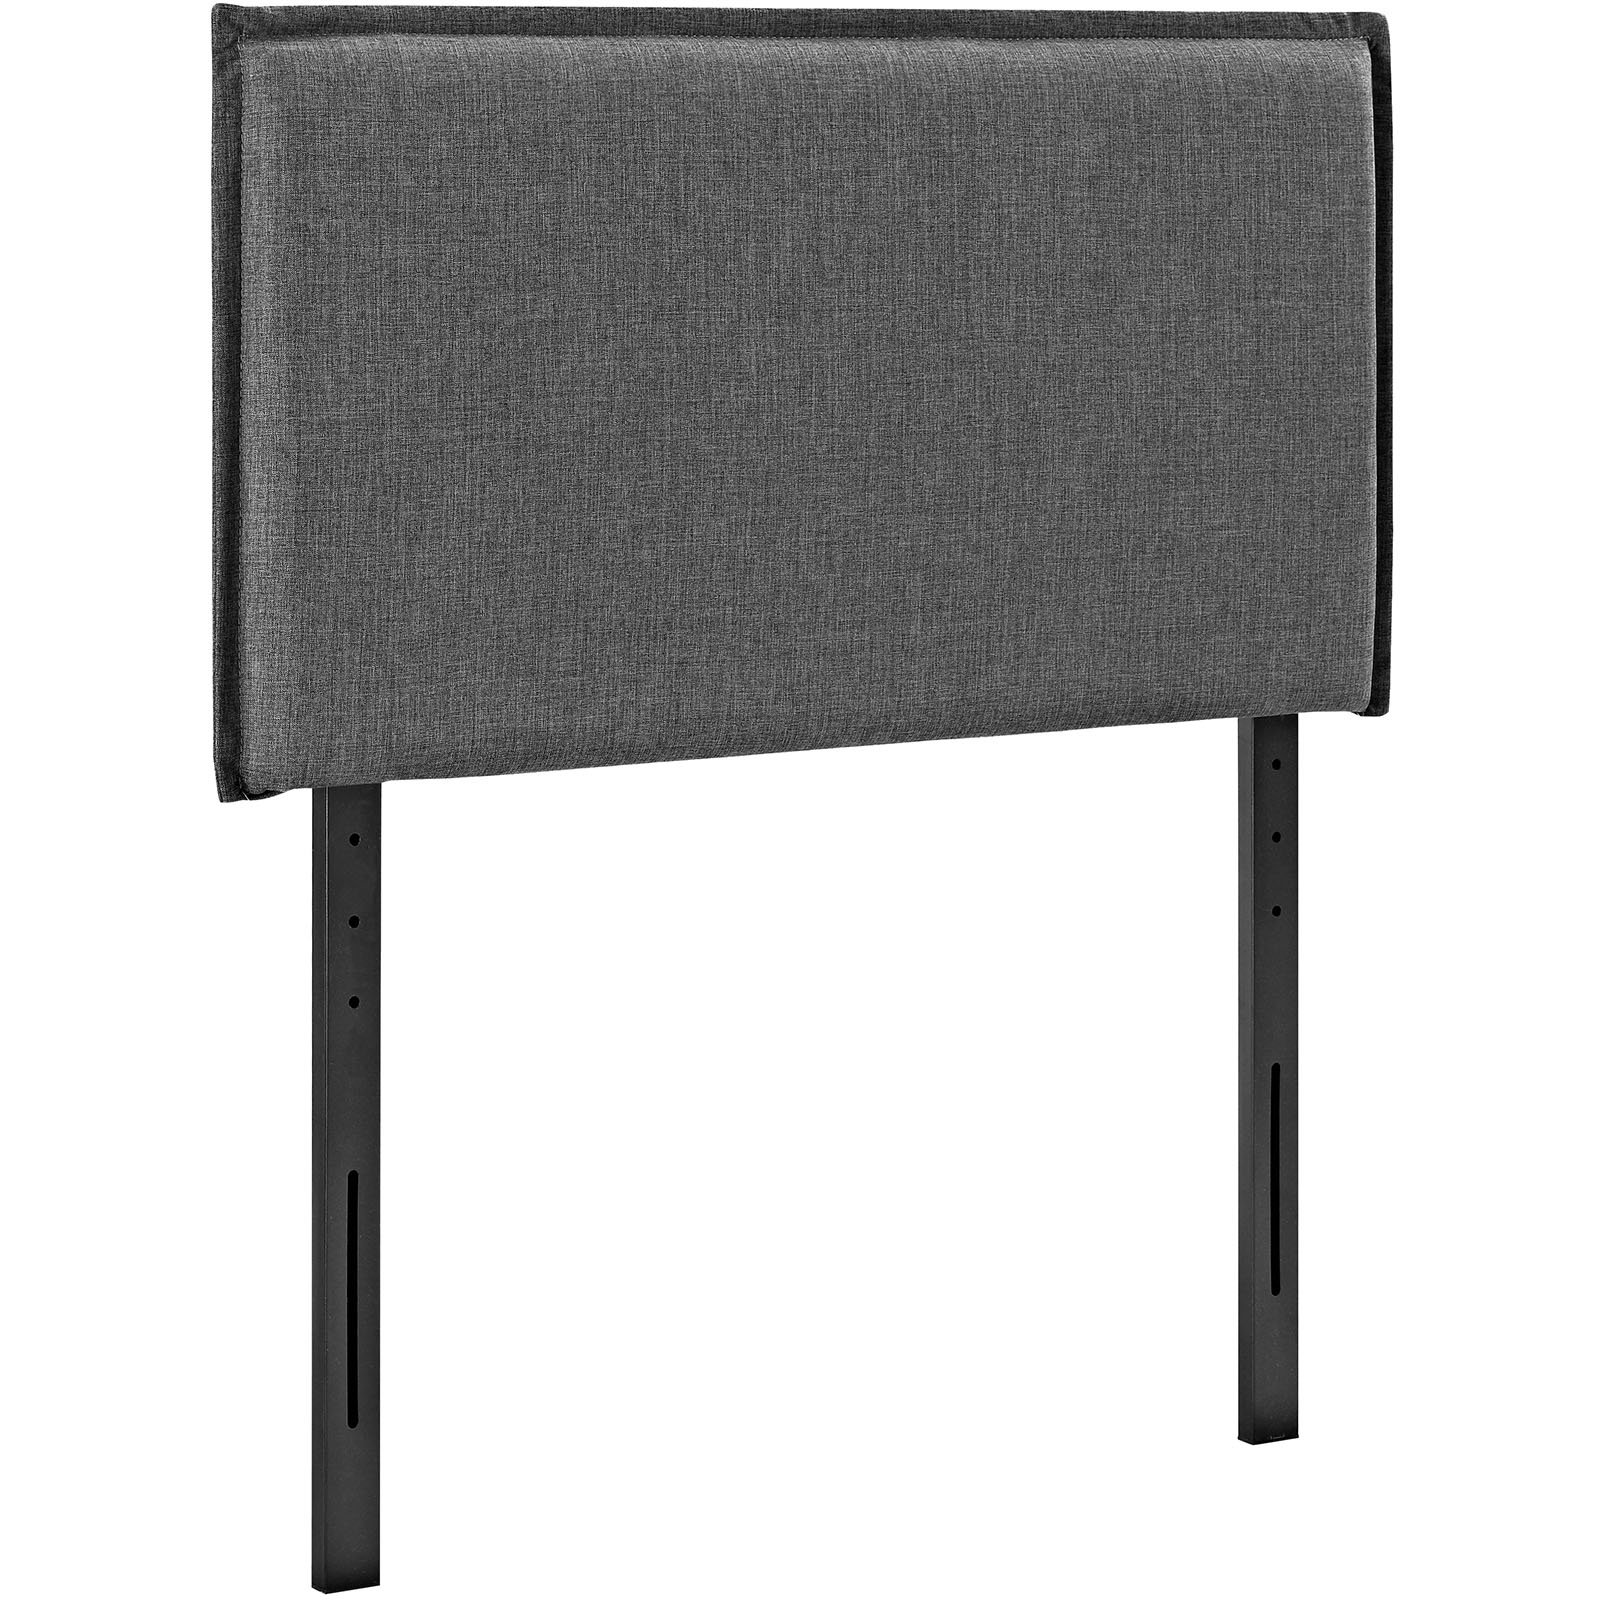 Modway Camille Linen Fabric Upholstered Twin Headboard in Gray with French Piping